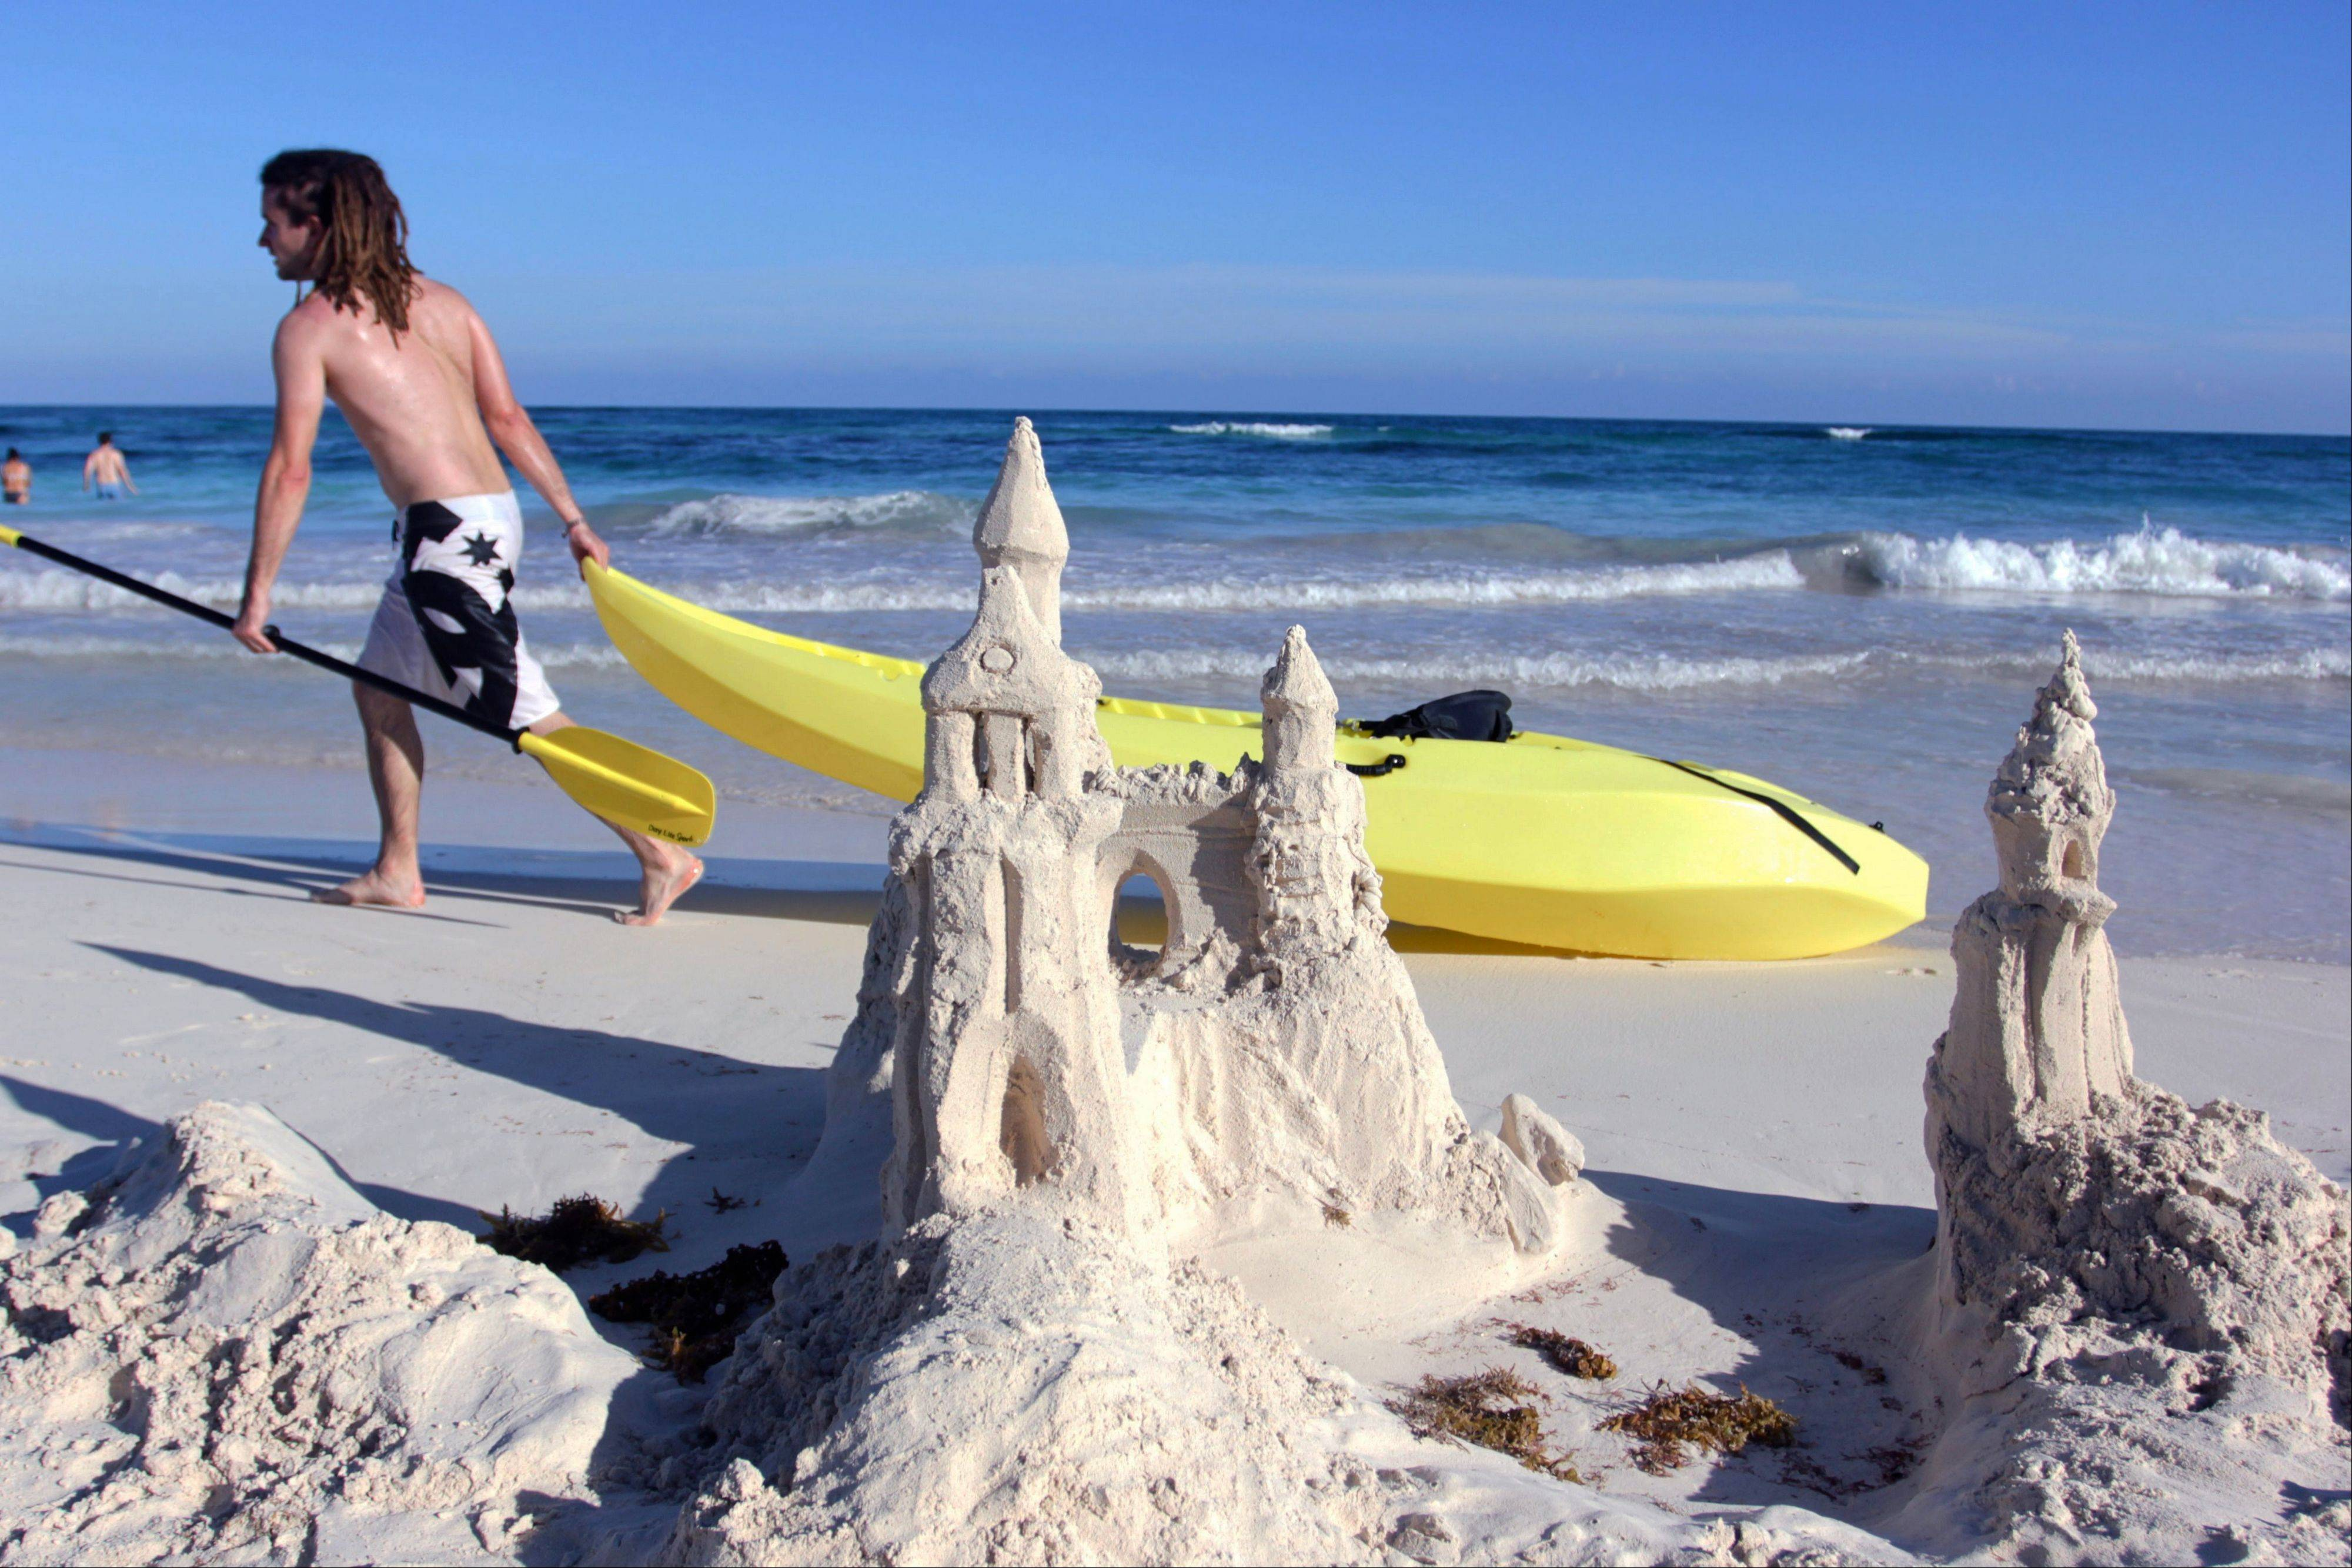 A man drags a kayak past a sand castle in Tulum, Mexico.